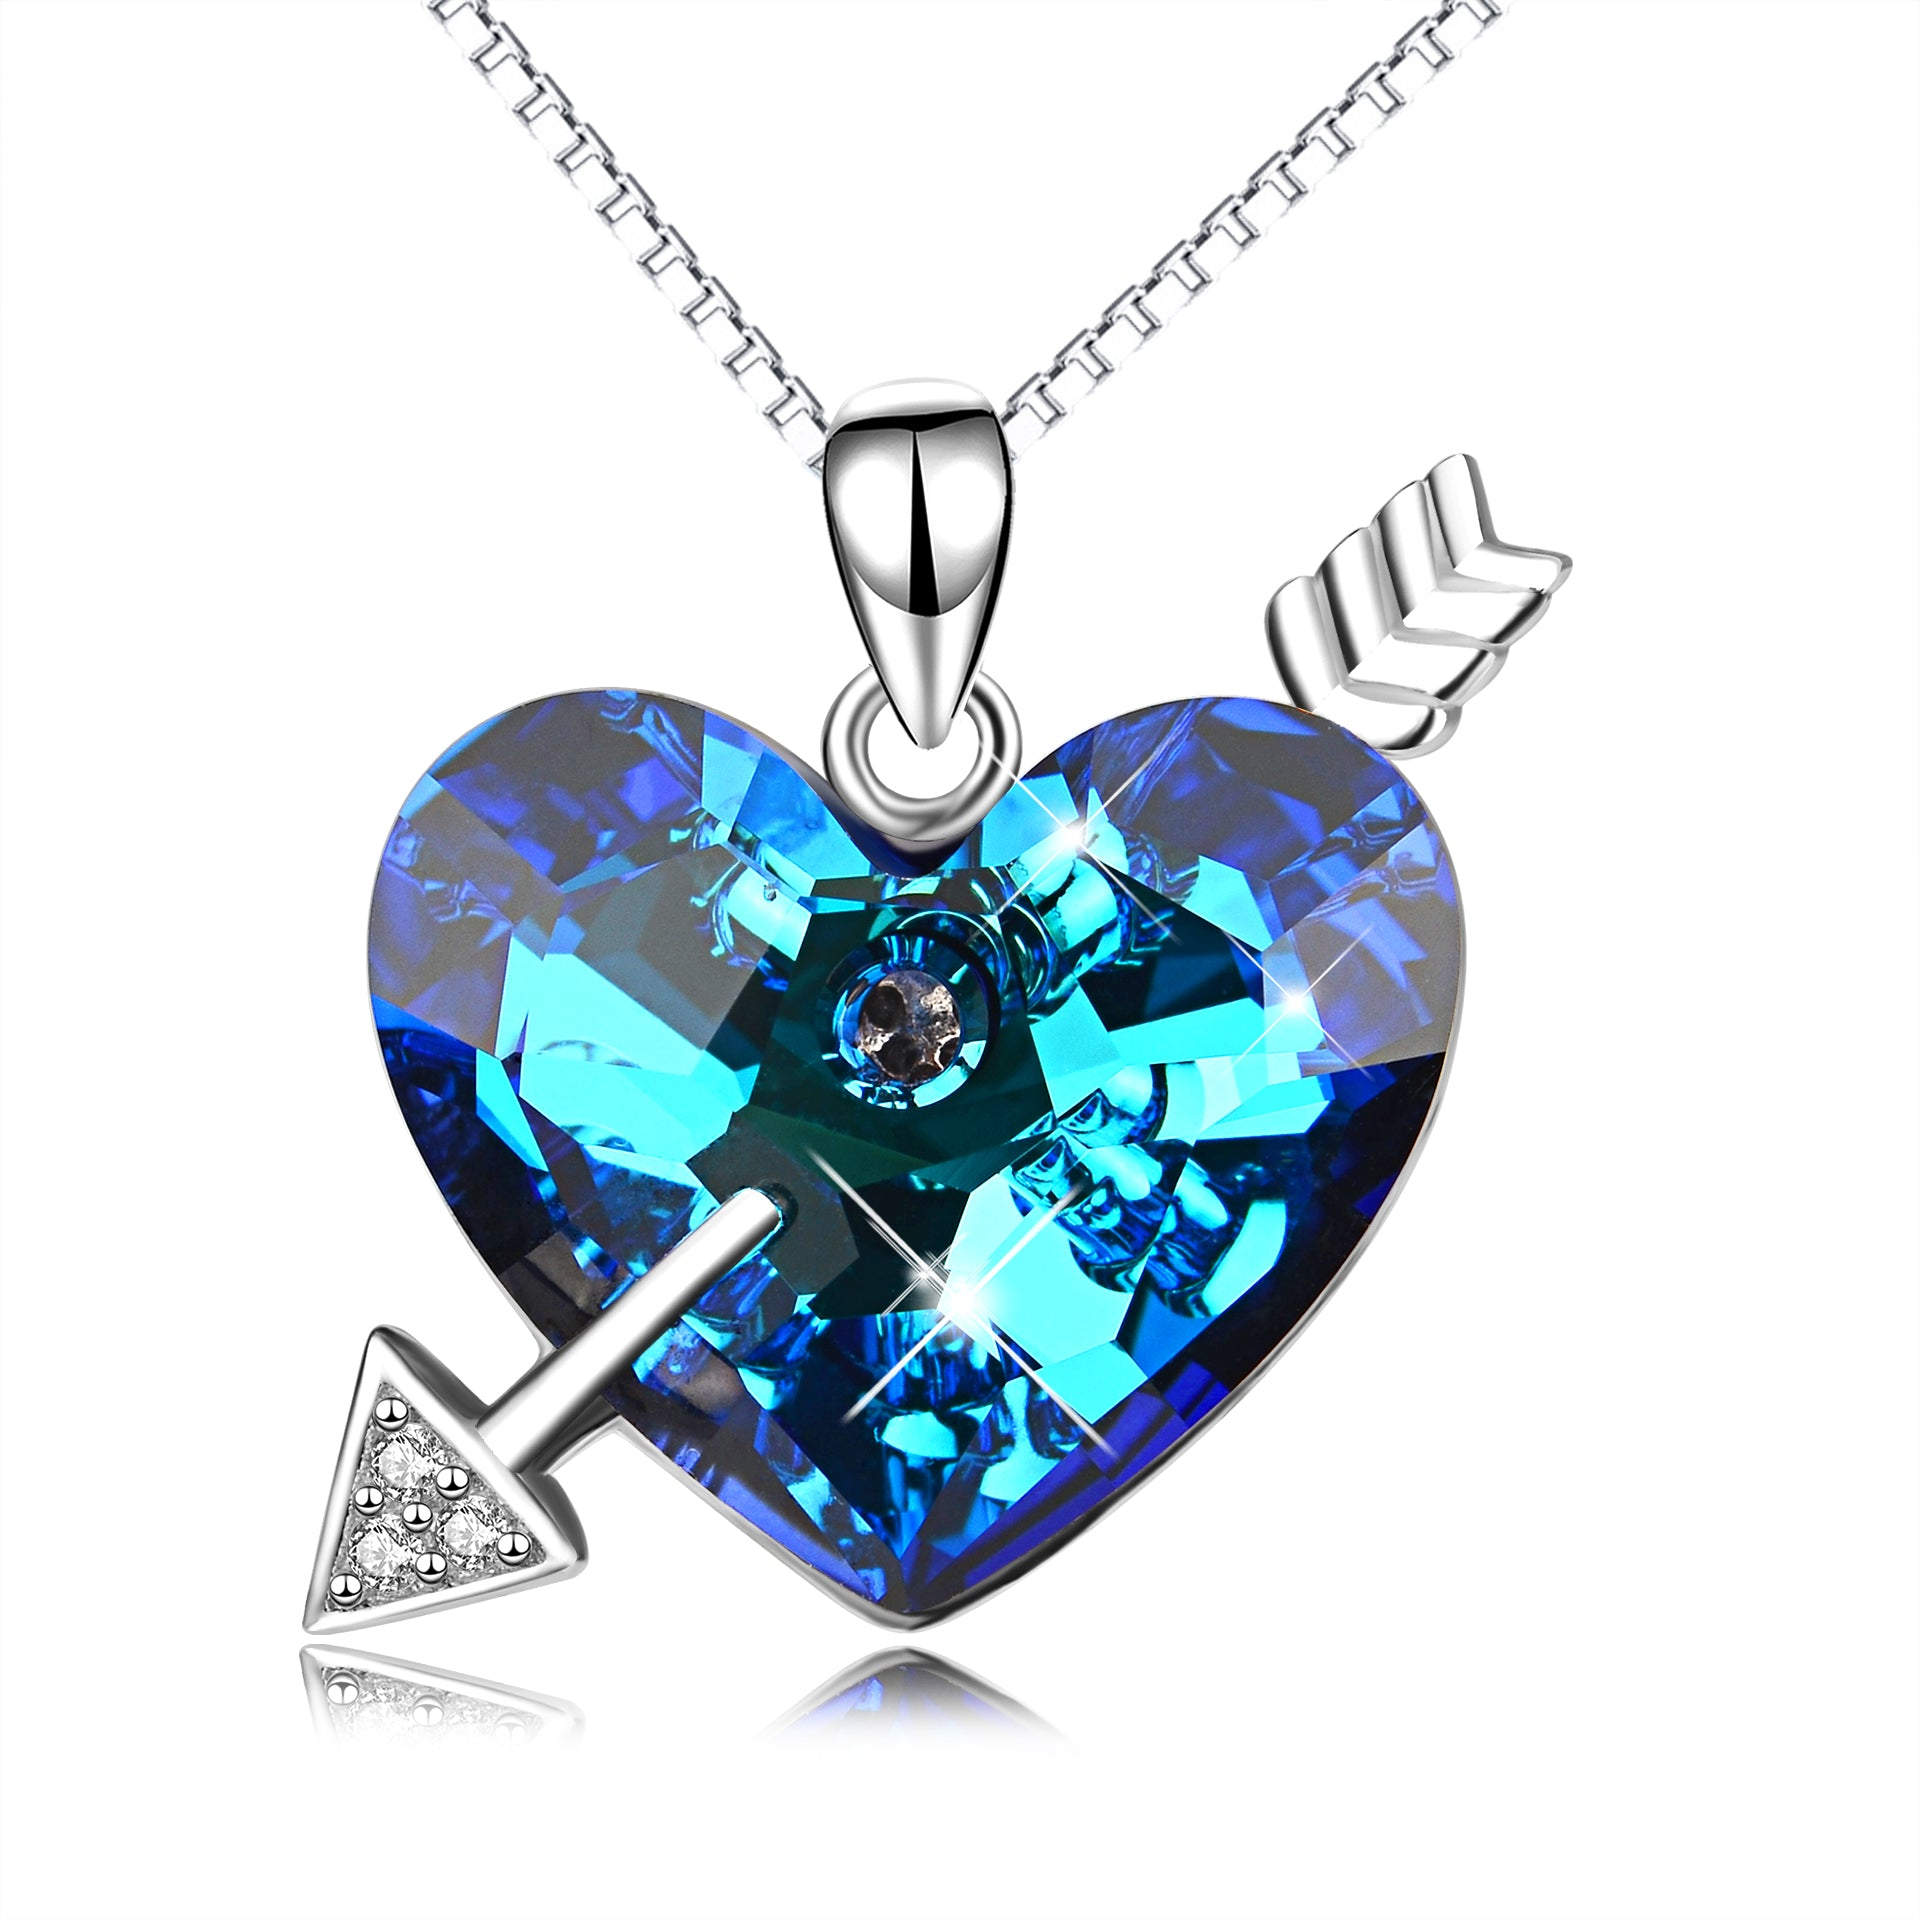 Cupid Arrow Necklace Best Jewelry Fashion 925 Sterling Silver Heart Necklace